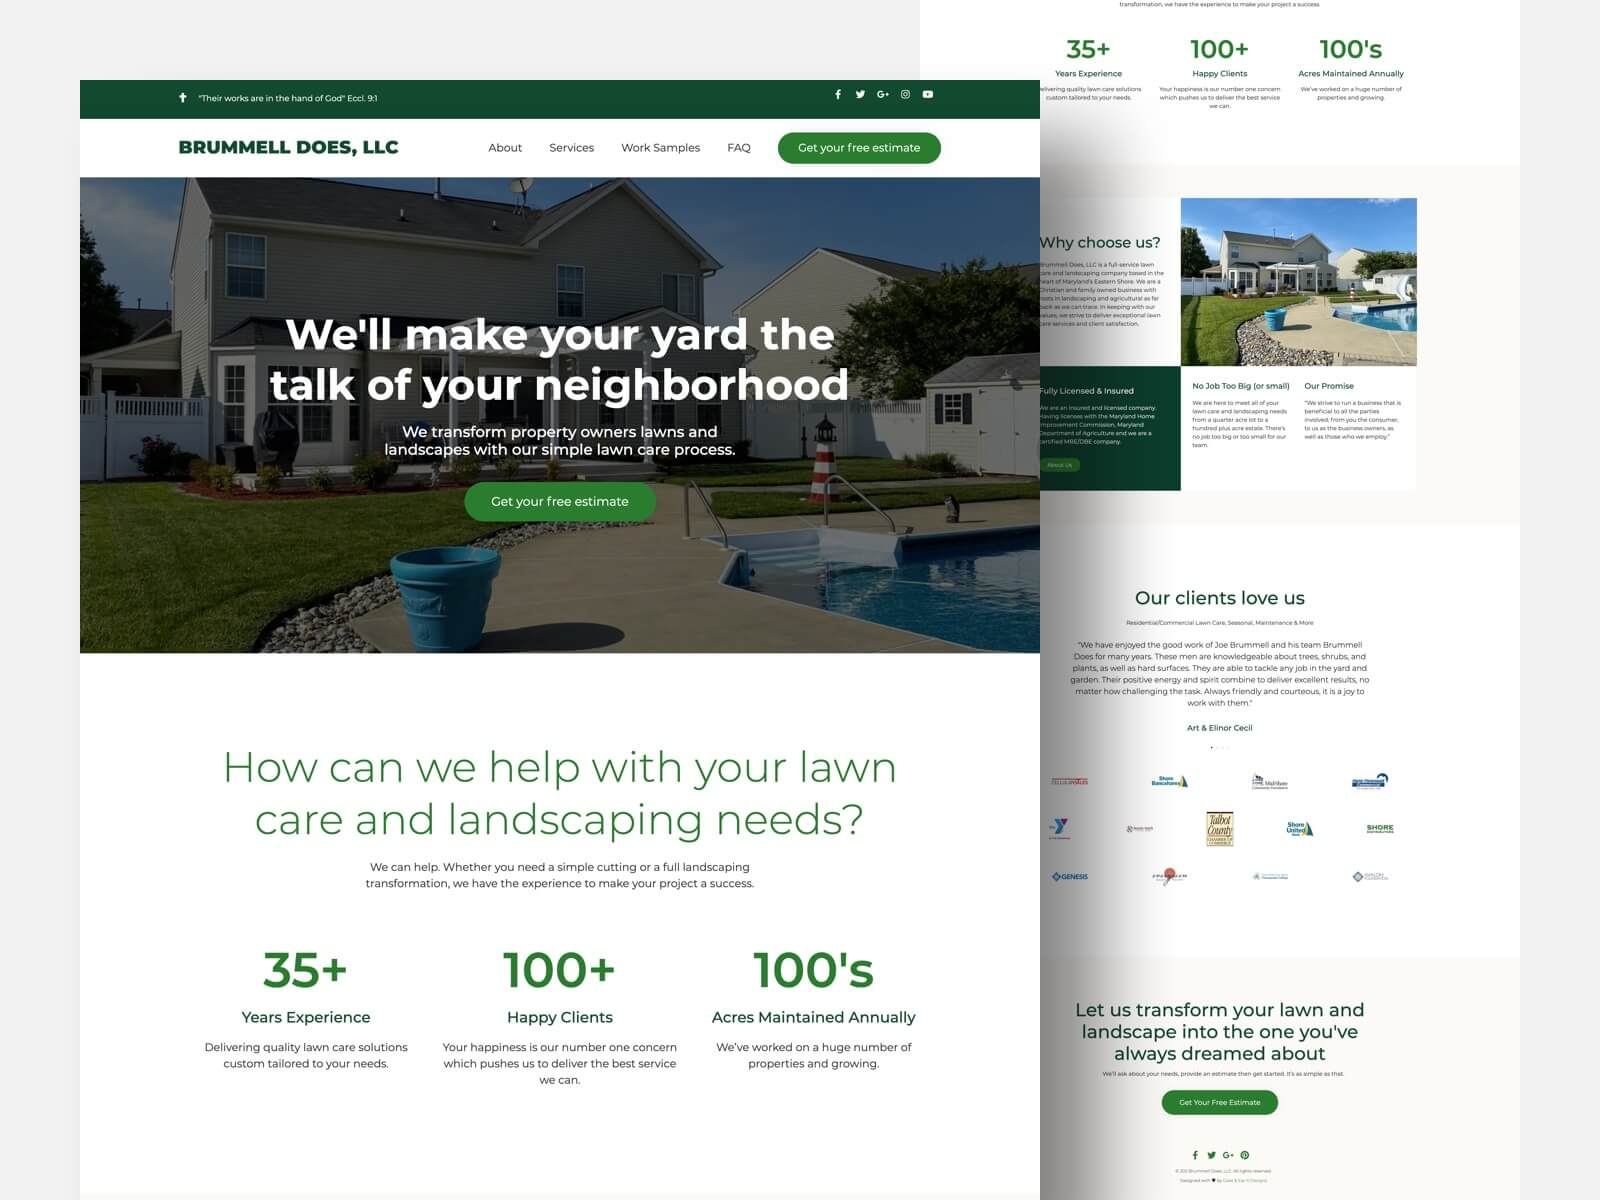 brummell-doest-landing-page@2x